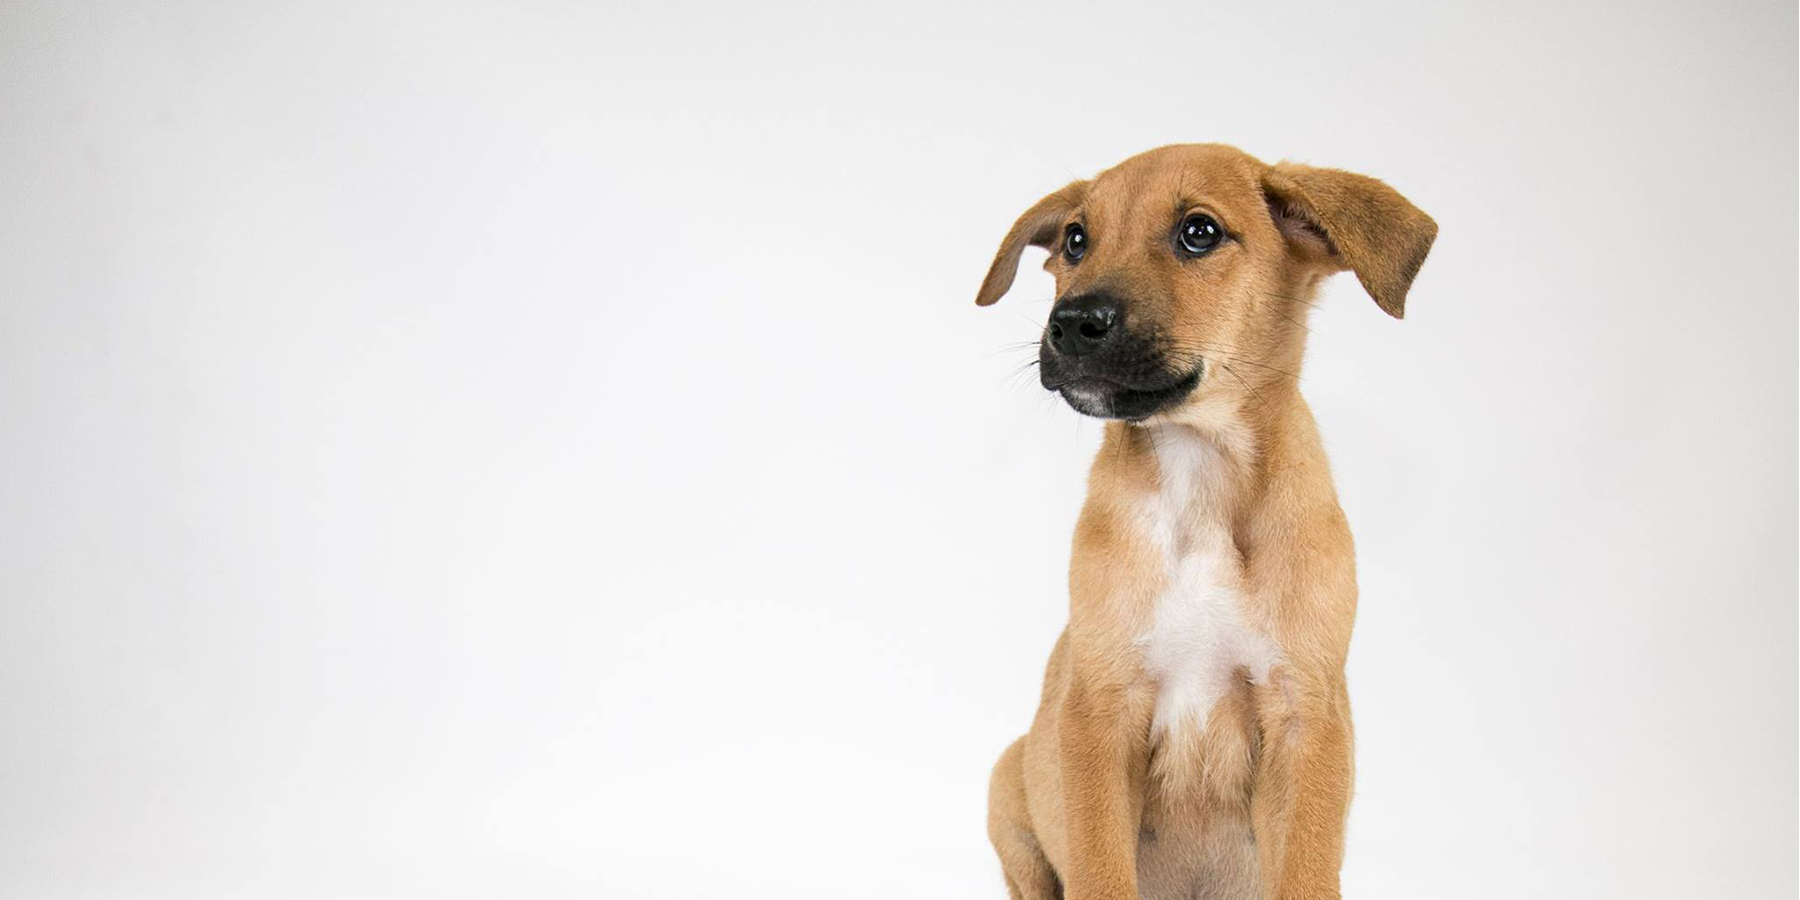 Make a Difference in the life of an Adoptable Dog.